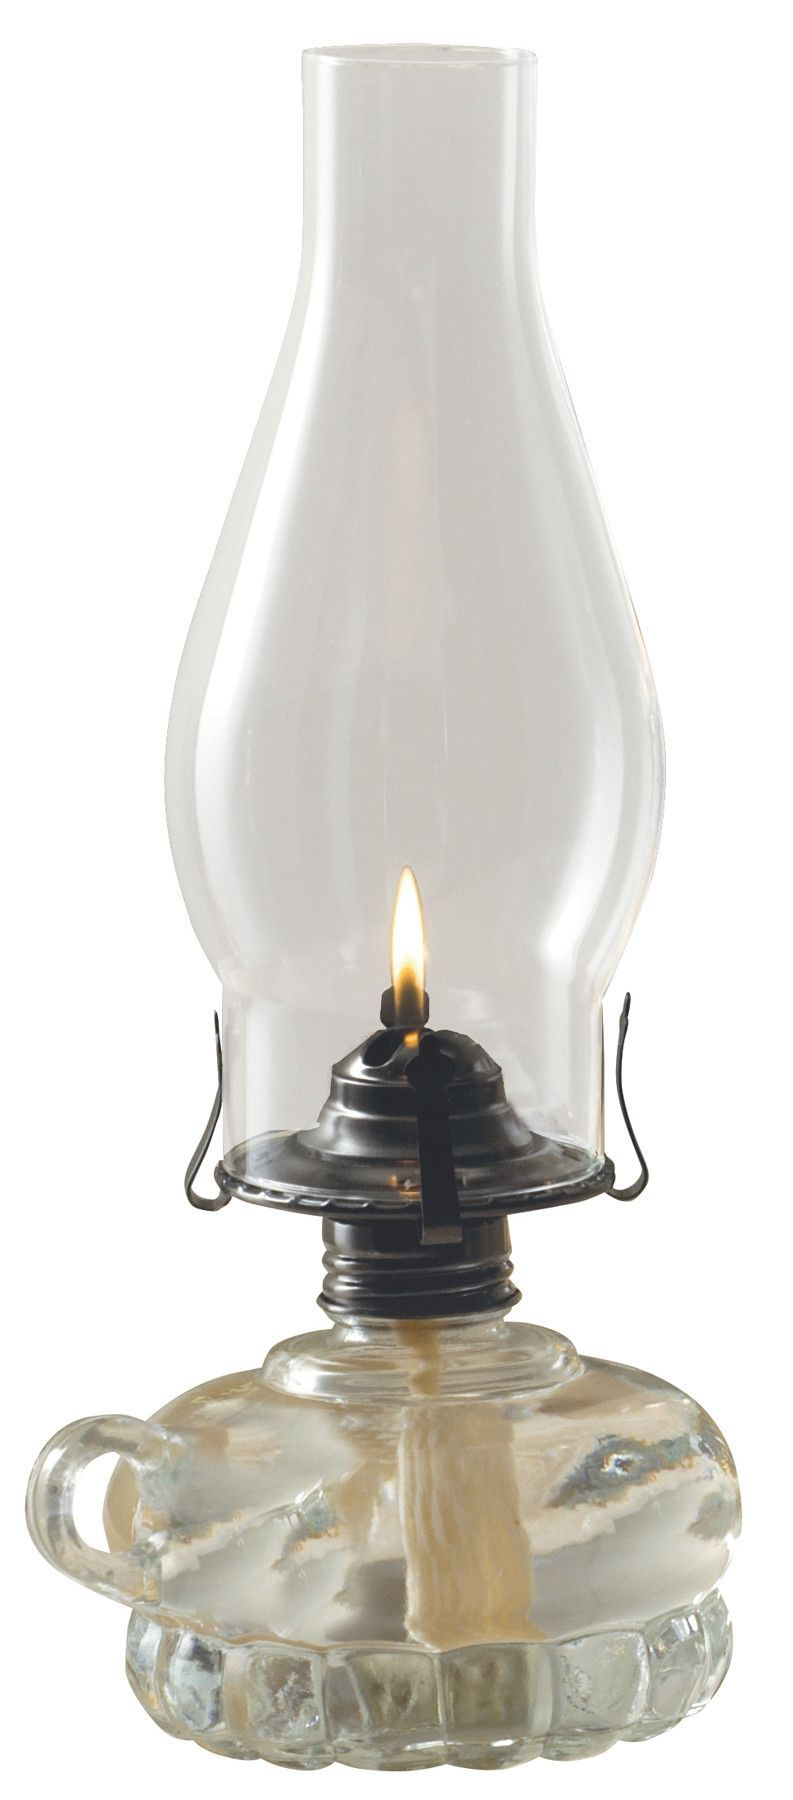 Features: -Classic chamber chimney oil lamp. -Pewter ...